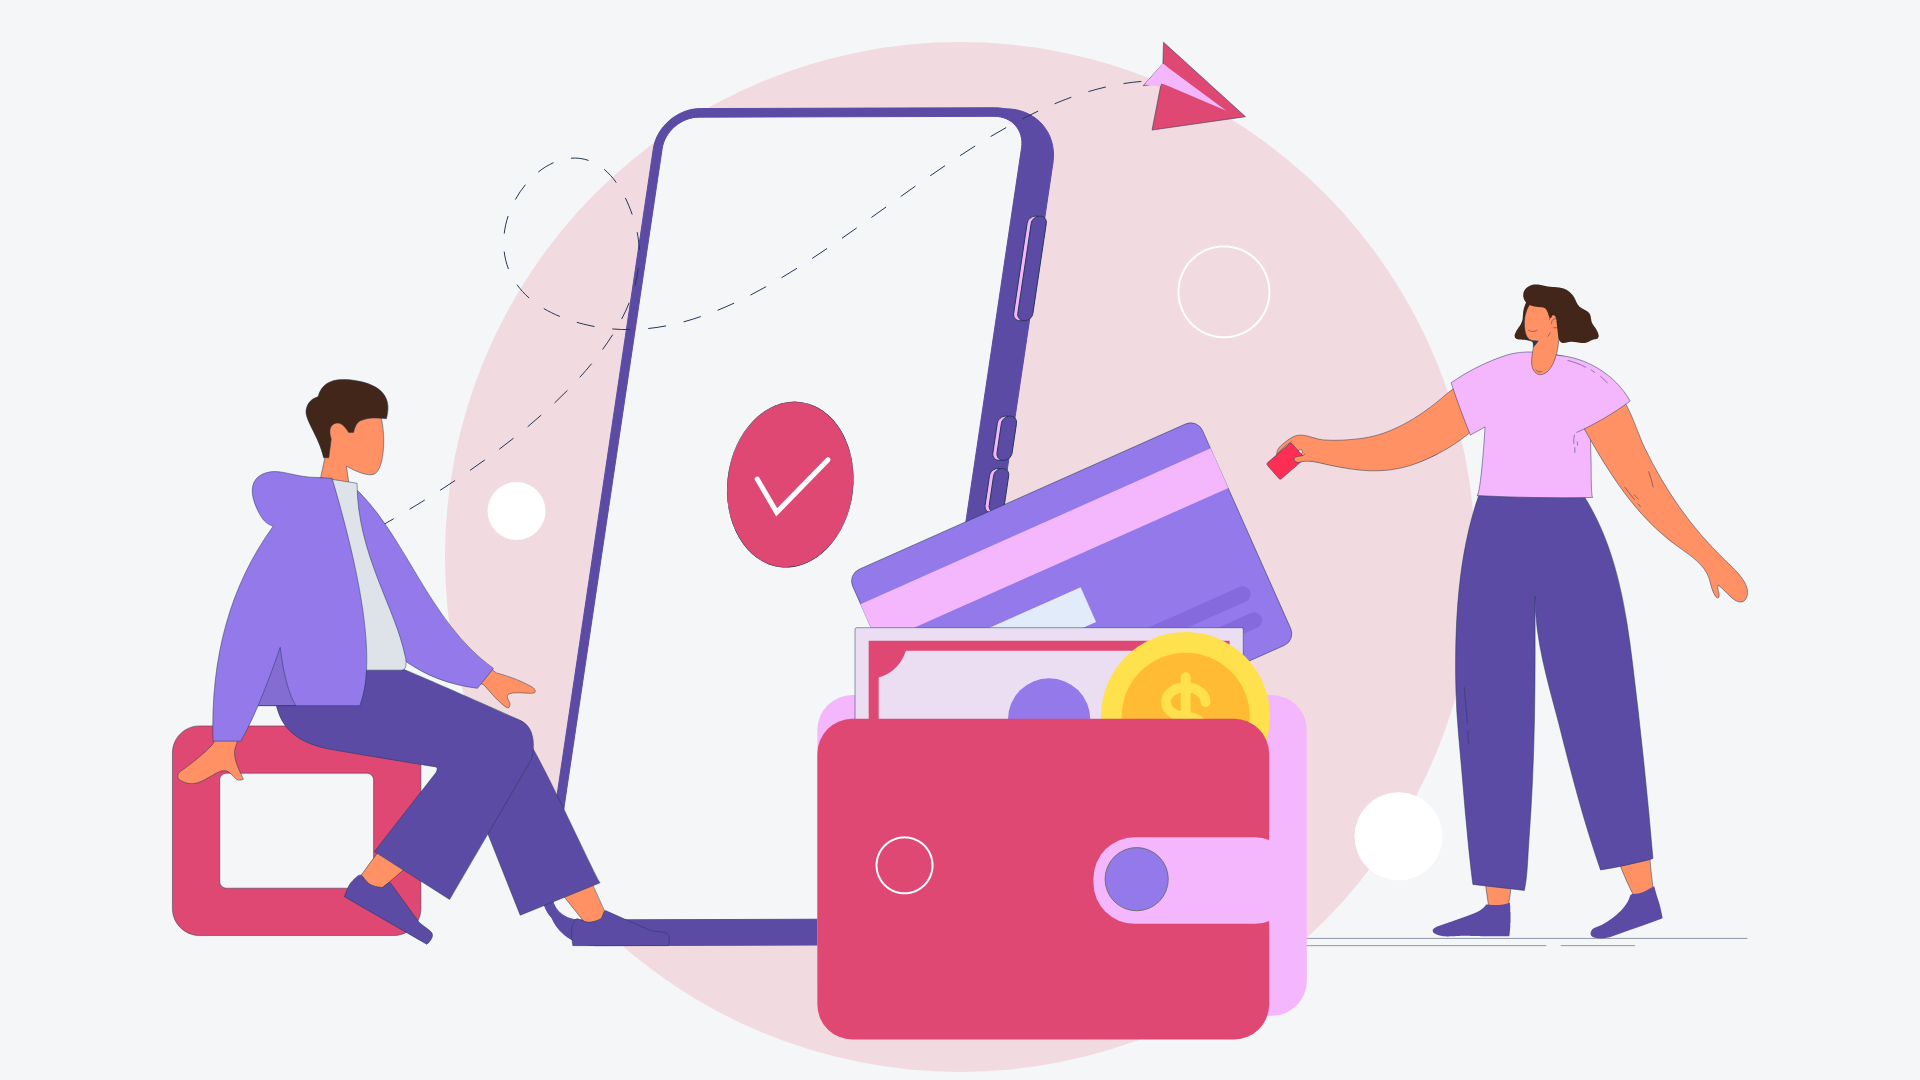 How to Make a Mobile Wallet App in 2021